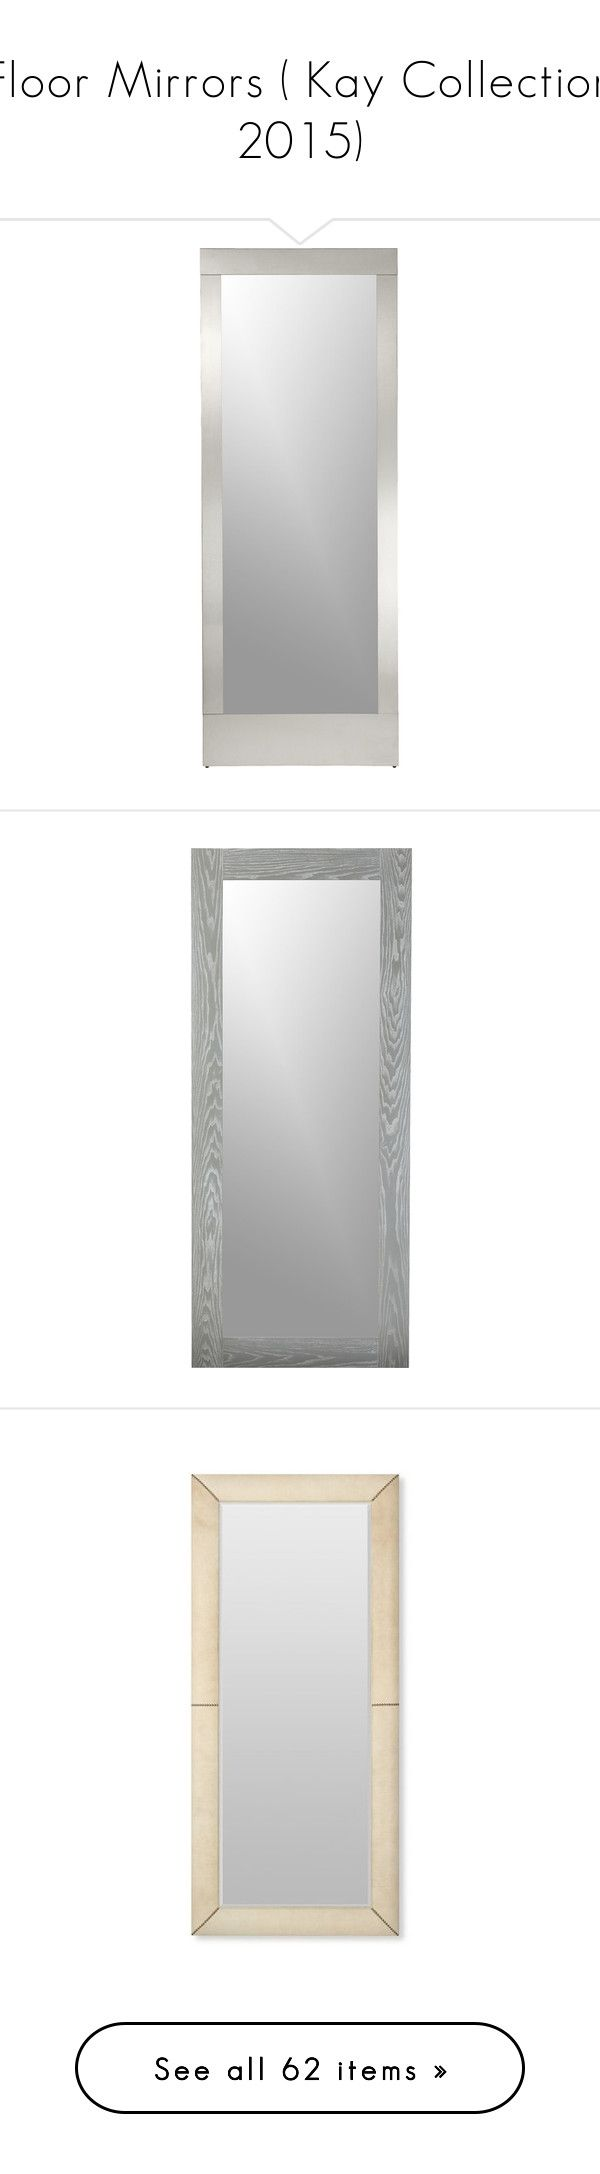 """""""Floor Mirrors ( Kay Collection 2015)"""" by addicted2design ❤ liked on Polyvore featuring home, home decor, mirrors, crate and barrel floor mirror, crate and barrel, crate and barrel mirrors, horizontal mirror, gray wall mirror, full length wall mirror and home wall decor"""